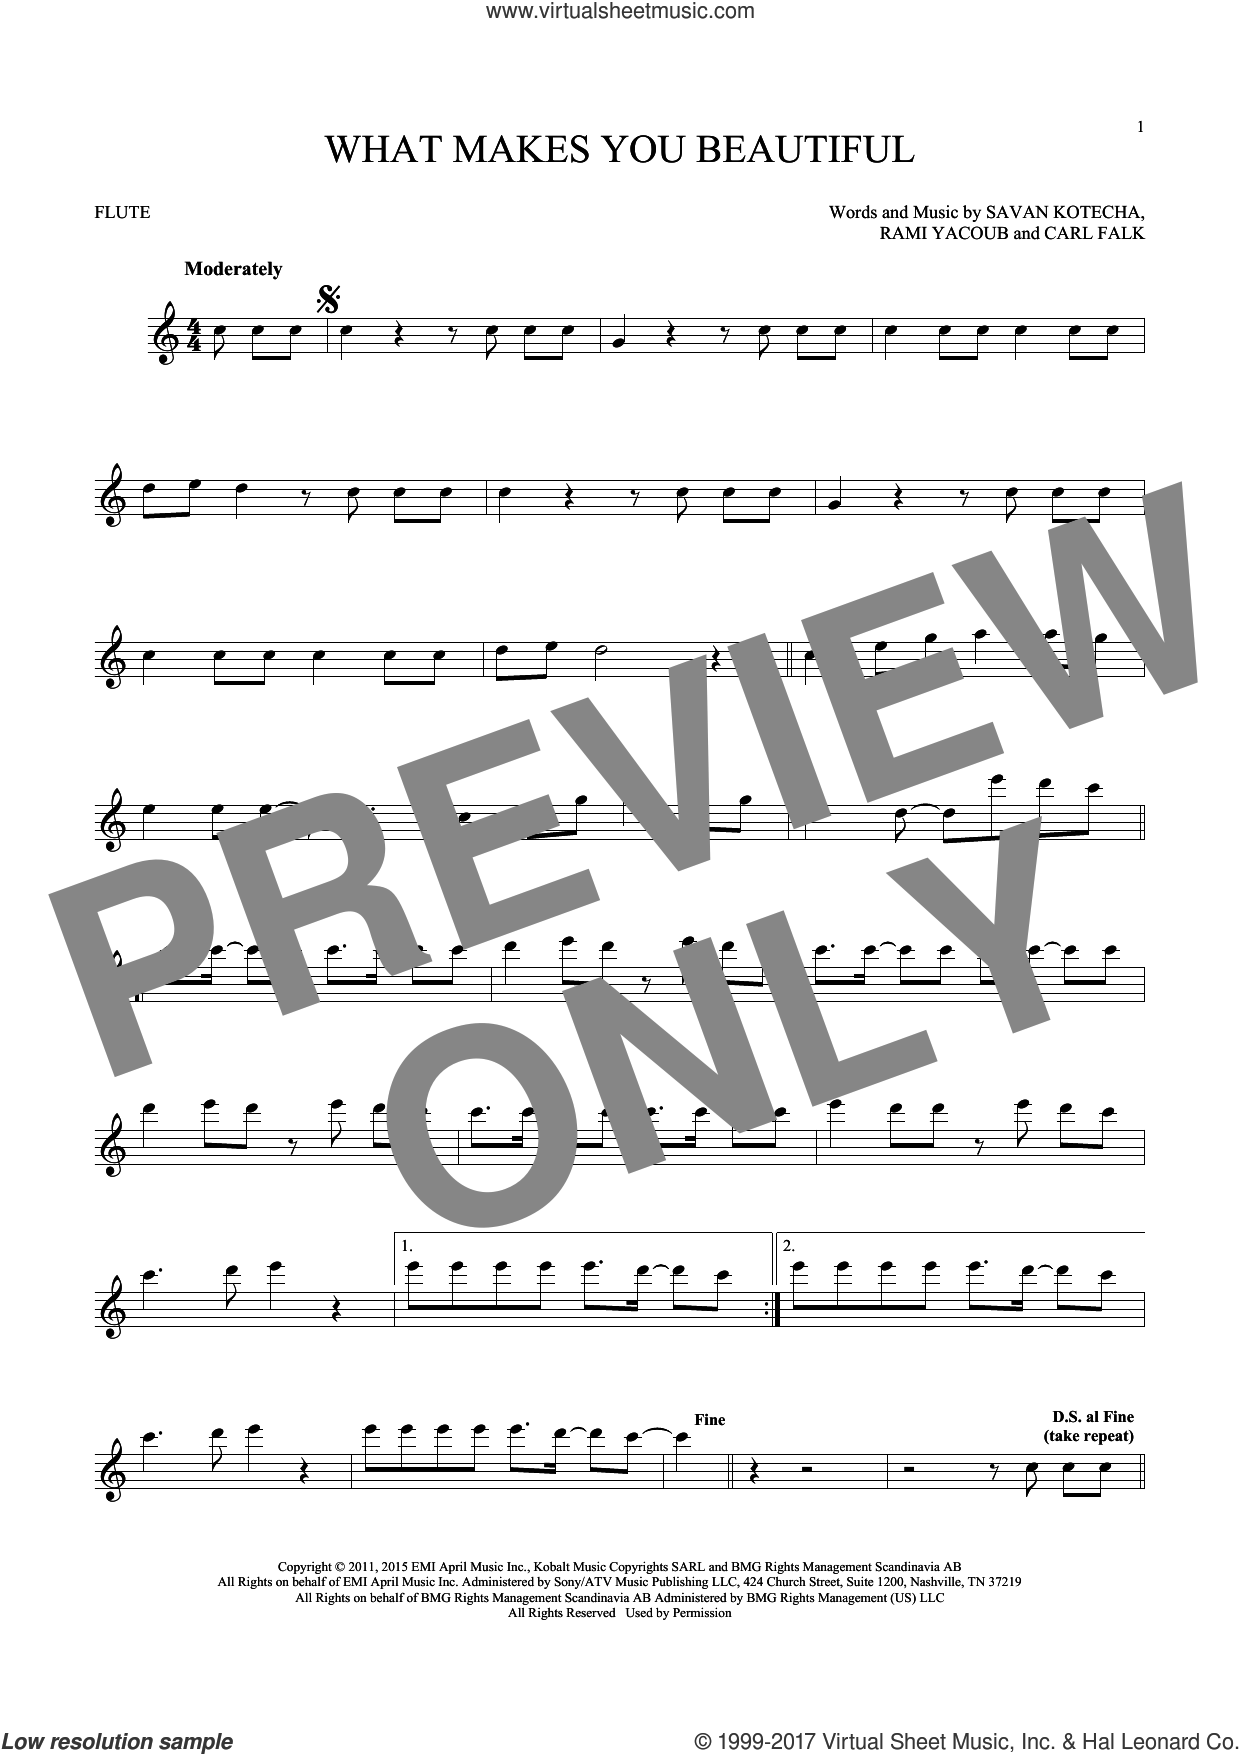 What Makes You Beautiful sheet music for flute solo by One Direction, Carl Falk, Rami and Savan Kotecha, intermediate skill level